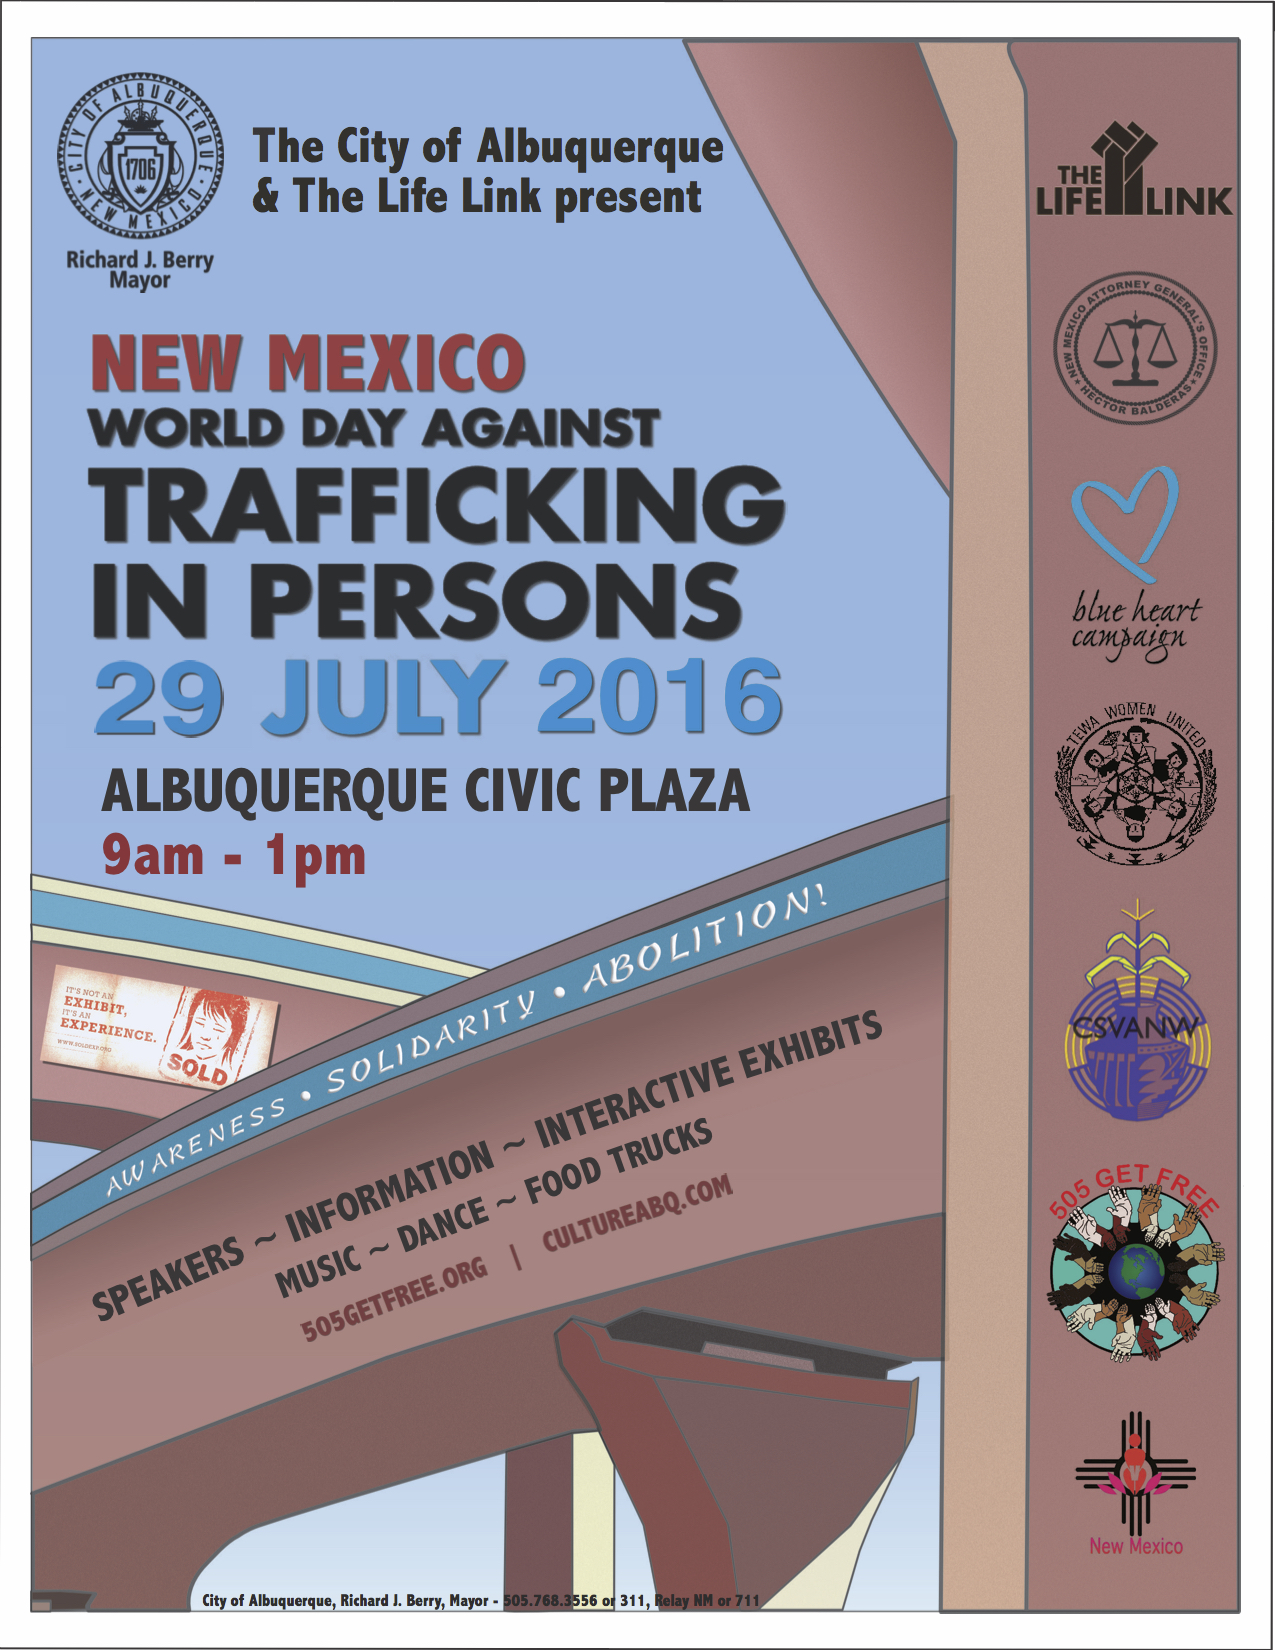 "The City of Albuquerque  and  The Life Link  are proud to announce the New Mexico World Day Against Trafficking in Persons, to be held at Albuquerque Civic Plaza on July 29, 2016, from 9am to 1pm.  Joining forces with the  New Mexico Office of the Attorney General , the  Coalition to STOP Violence against Native Women ,  Tewa Women United ,  One Billion Rising , and others, we are devoting the day to raising awareness about Human Trafficking, educating the community about available resources, showing solidarity with victims, and campaigning to abolish modern day slavery in New Mexico and around the world.  Speakers for the event include Albuquerque Mayor Richard J. Berry, New Mexico Attorney General Hector Balderas, and many others.  Entertainment includes live music and dance, food trucks, a performance by  Graviel De La Plaga , and more.  We are also proud to announce the participation of  SOLD: The Human Trafficking Experience .  SOLD is a ""multi-sensory experience that will educate you on the shocking reality of human trafficking, both locally and globally.  Participants will be immersed into the lives of victims in nine different parts of the world.  SOLD challenges participants to respond to human trafficking with justice, mercy, and humility"".  Please mark your calendars and join us on Albuquerque Civic Plaza on July 29th!  Print copies of the  flyer  and share with friends and colleagues!  End modern day slavery now!"